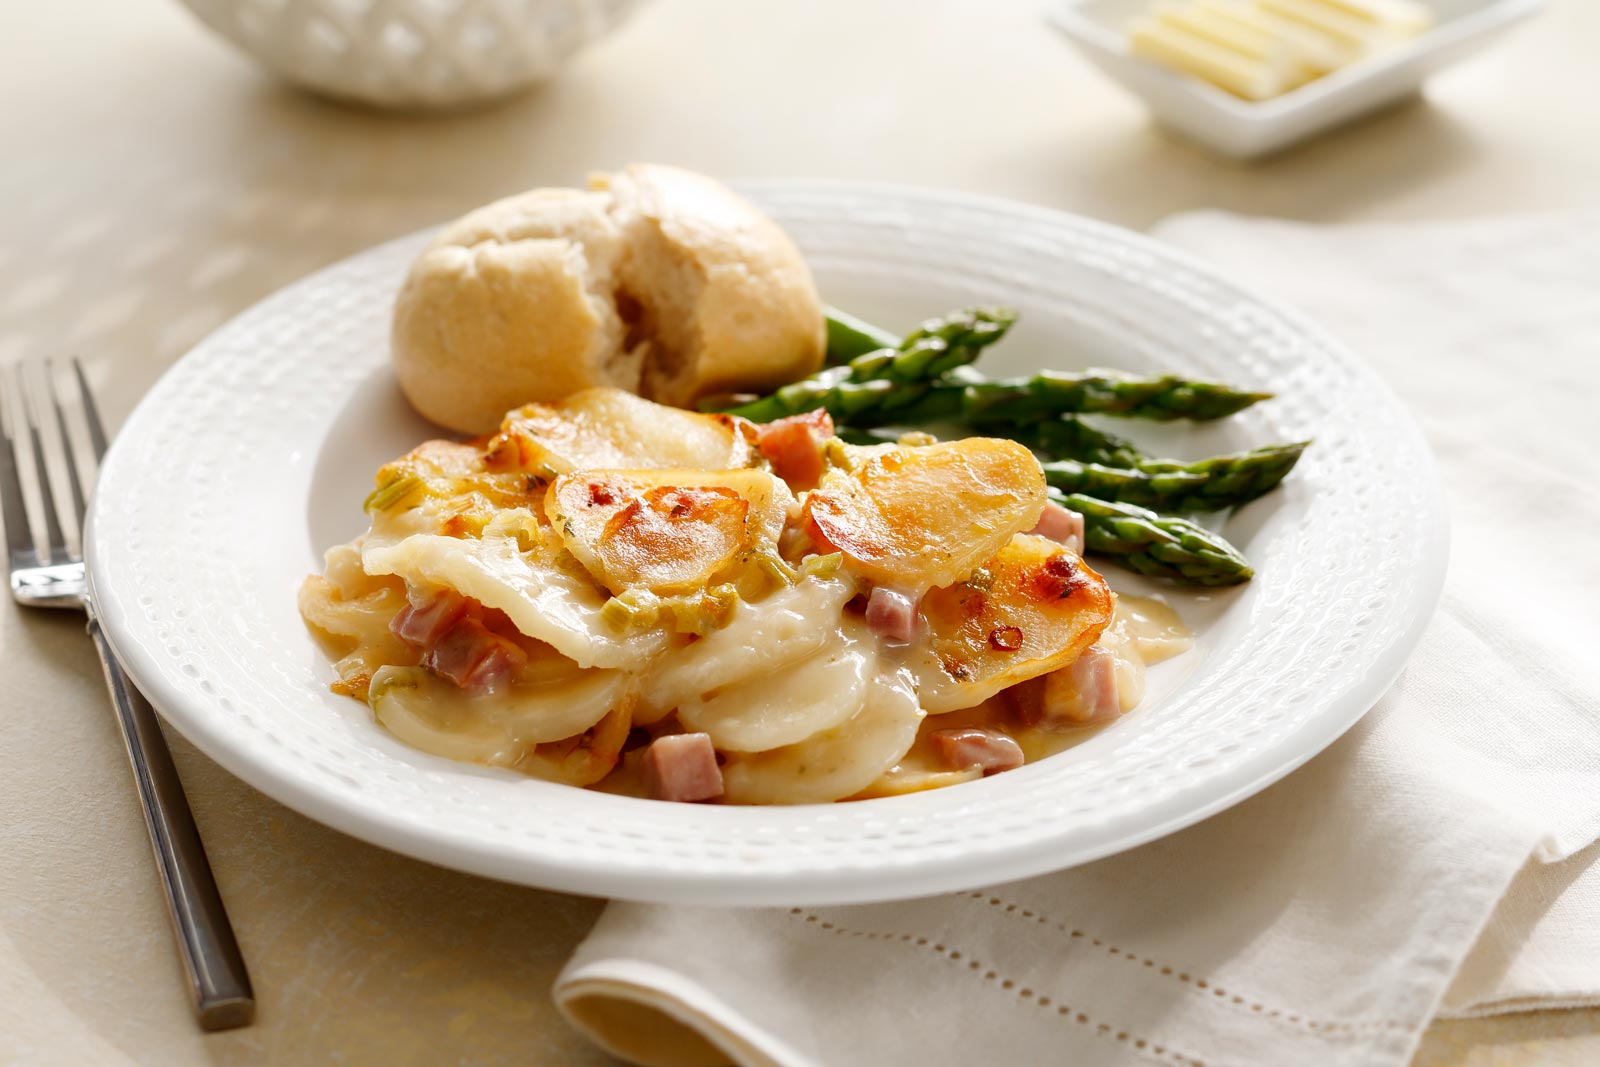 This recipe makes an easy Easter solution by combining ham and scalloped potatoes in one dish.